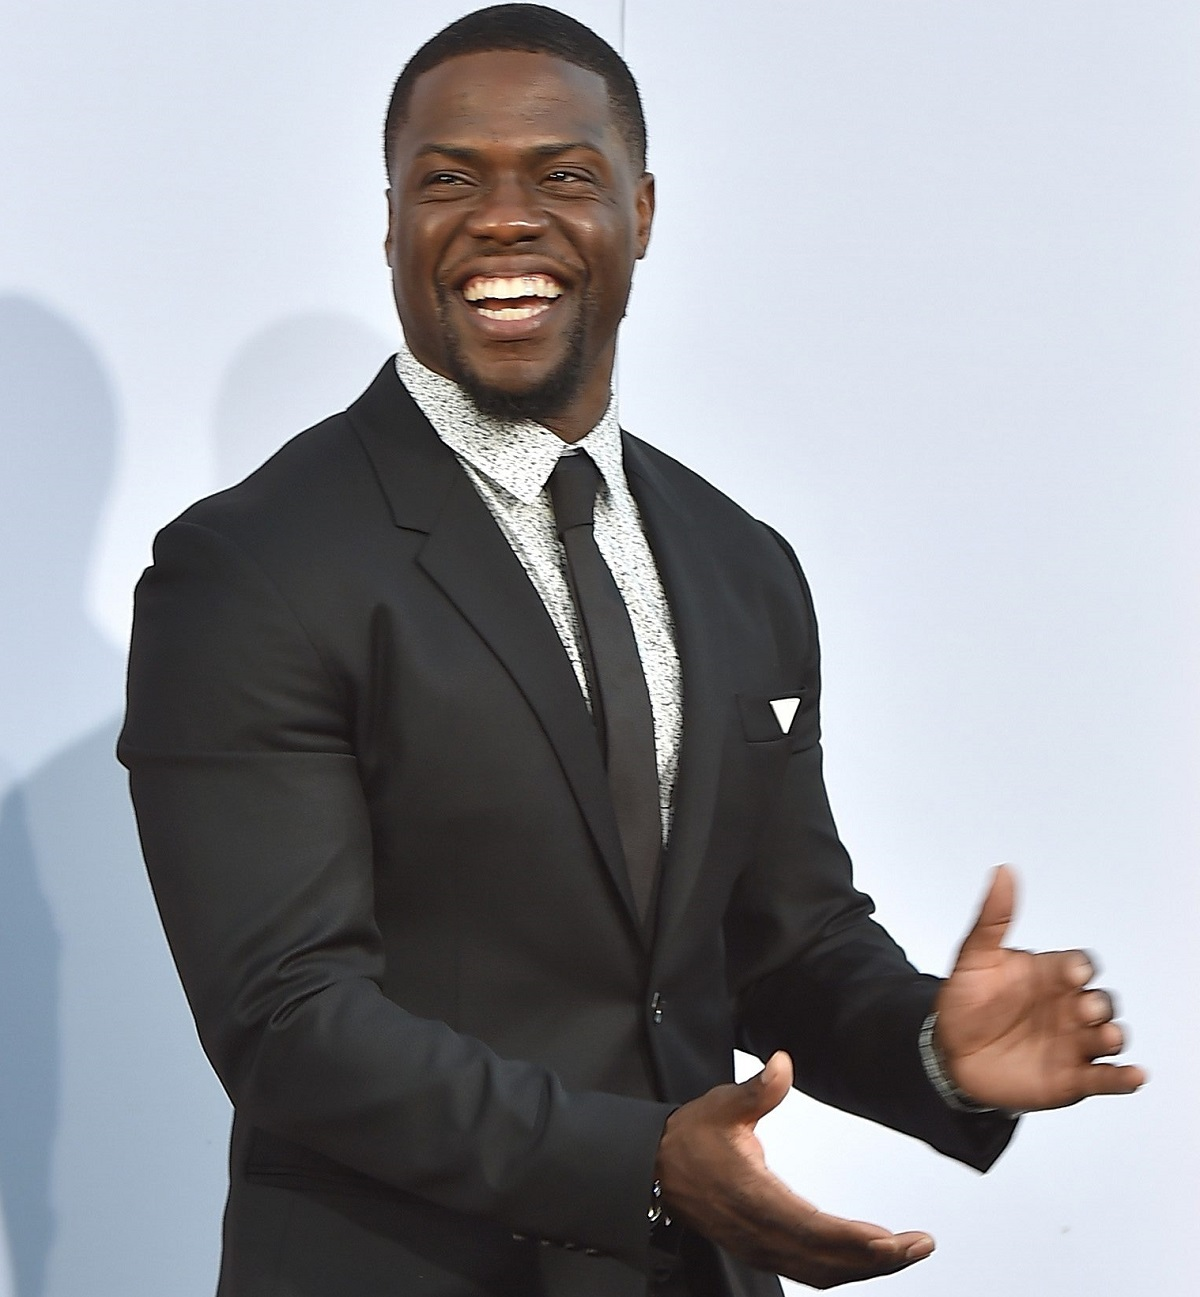 'Kevin Hart: What Now?' captures the comedian's two-night stand in Philadelphia.